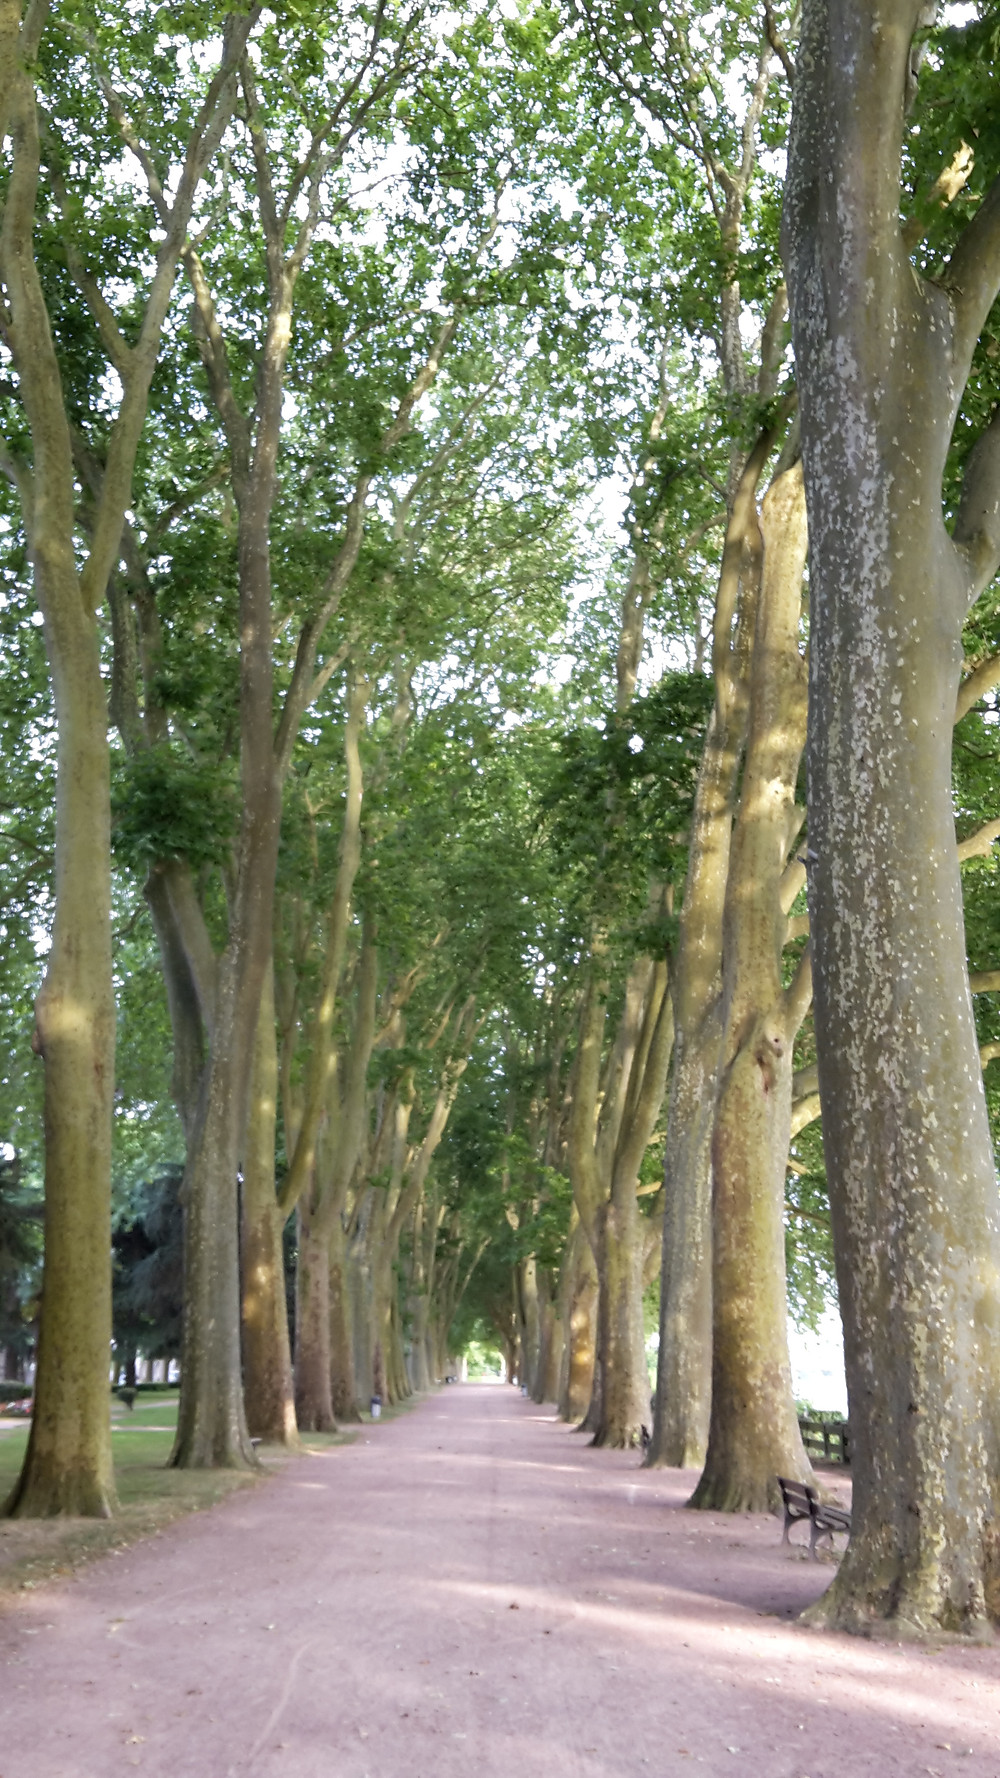 Avenue of trees along the Vienne River, France